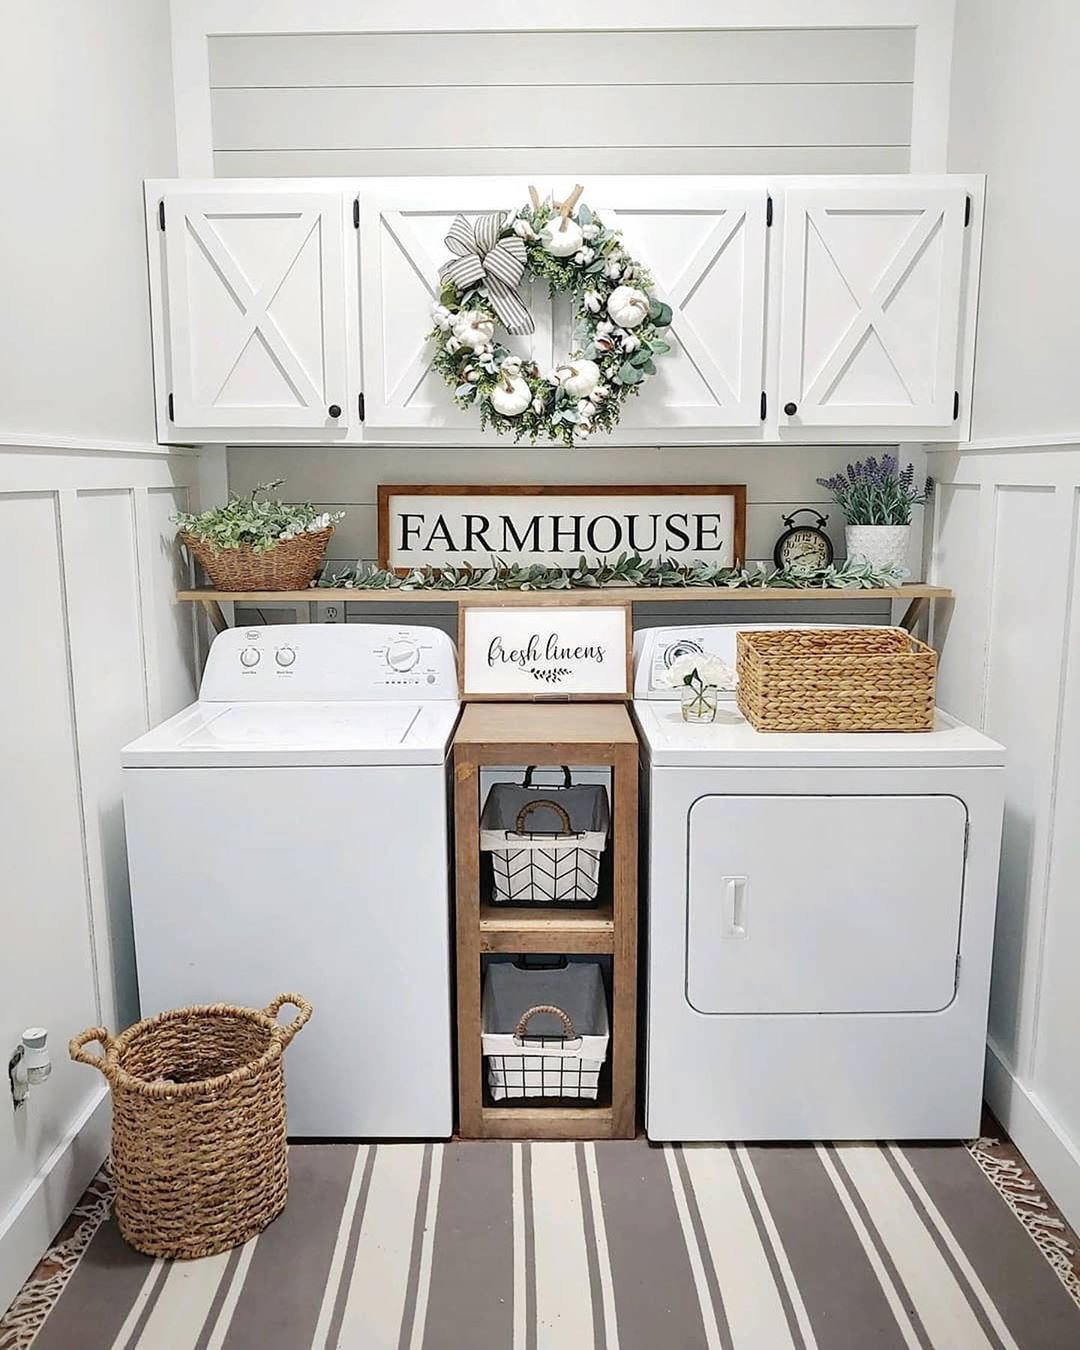 Farmhouse Fanatics On Instagram Do You Prefer A Clean White Kitchen Or A Rustic Kitchen Like T Rustic Farmhouse Kitchen Unique Bathroom Decor Rustic Kitchen